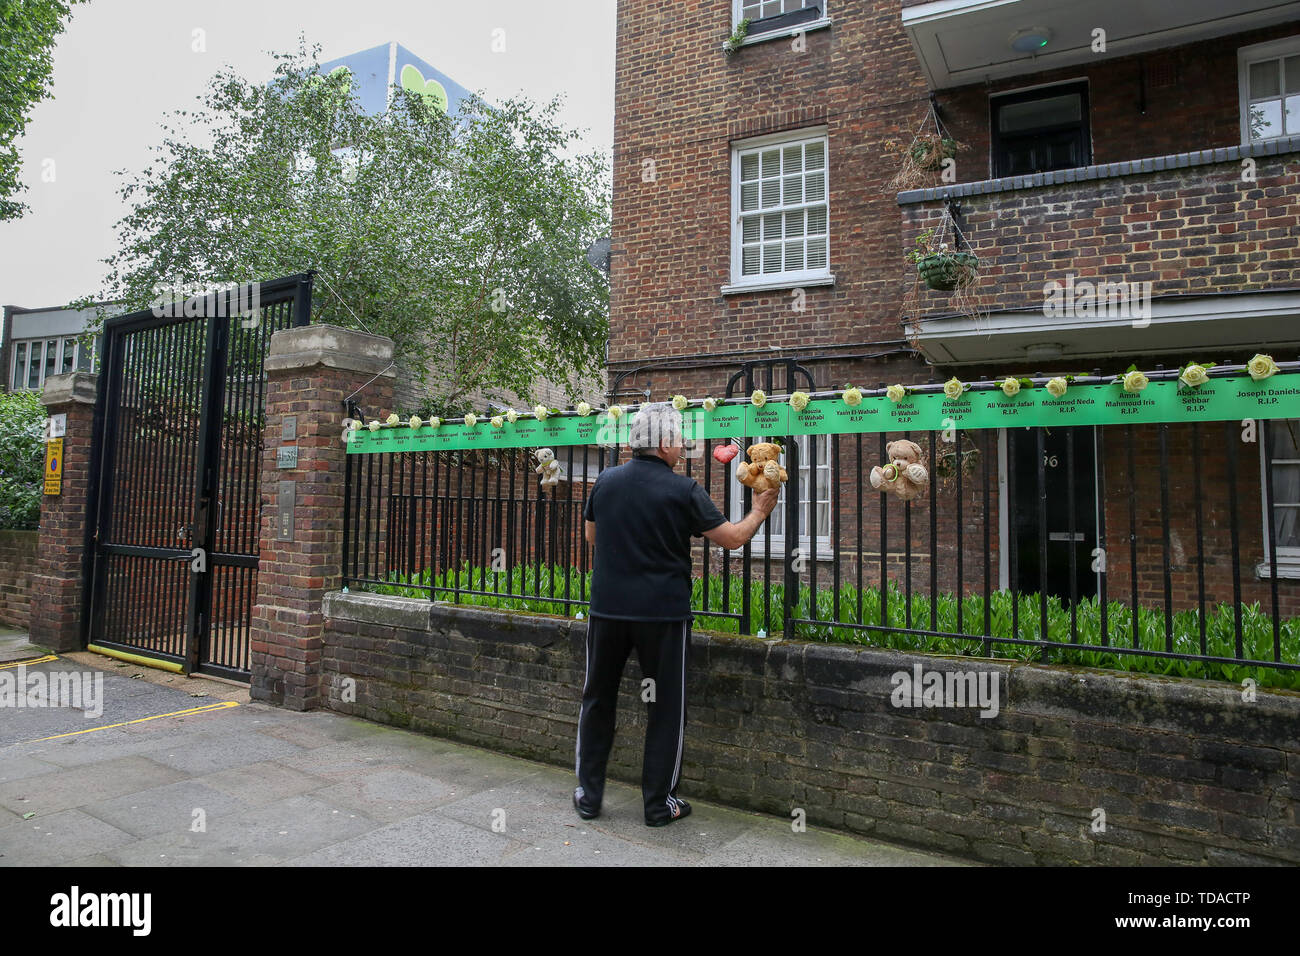 North Kensington, West London. UK 14 Jun 2019 - A man puts a white rose with the names of people who lost their lives, hung from railings on a block of flats to commemorate the second anniversary of the Grenfell Tower fire. On 14 June 2017, just before 1:00Êam a fire broke out in the kitchen of the fourth floor flat at the 24-storey residential tower block in North Kensington, West London, which took the lives of 72 people. More than 70 others were injured and 223 people escaped.  Credit: Dinendra Haria/Alamy Live News - Stock Image